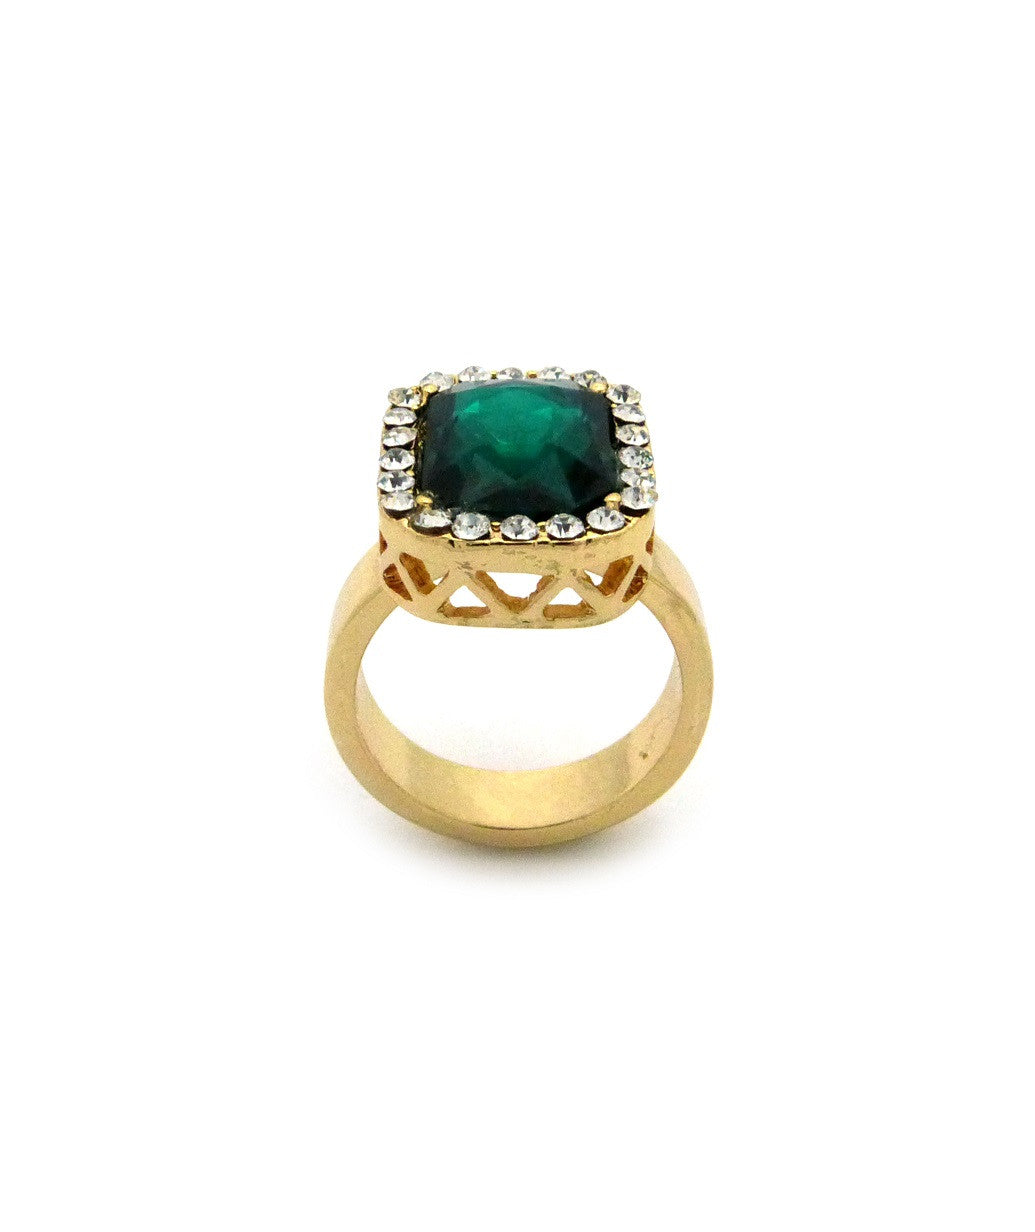 Emerald Gem Stone Iced Out Ring